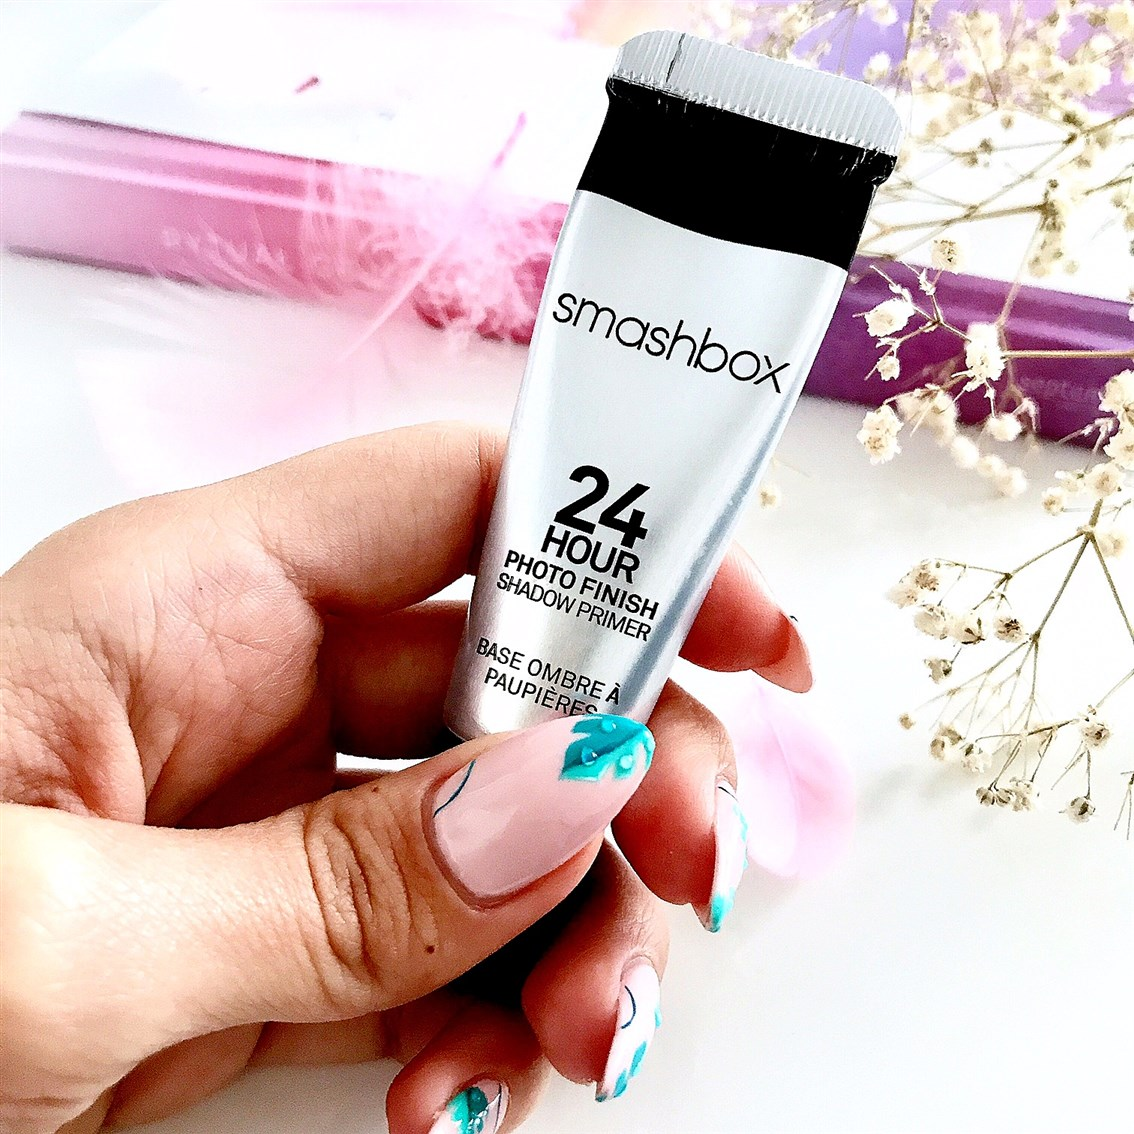 Smashbox 24 Hour Photo Finish Shadow Primer, najlepsza baza pod cienie do powiek